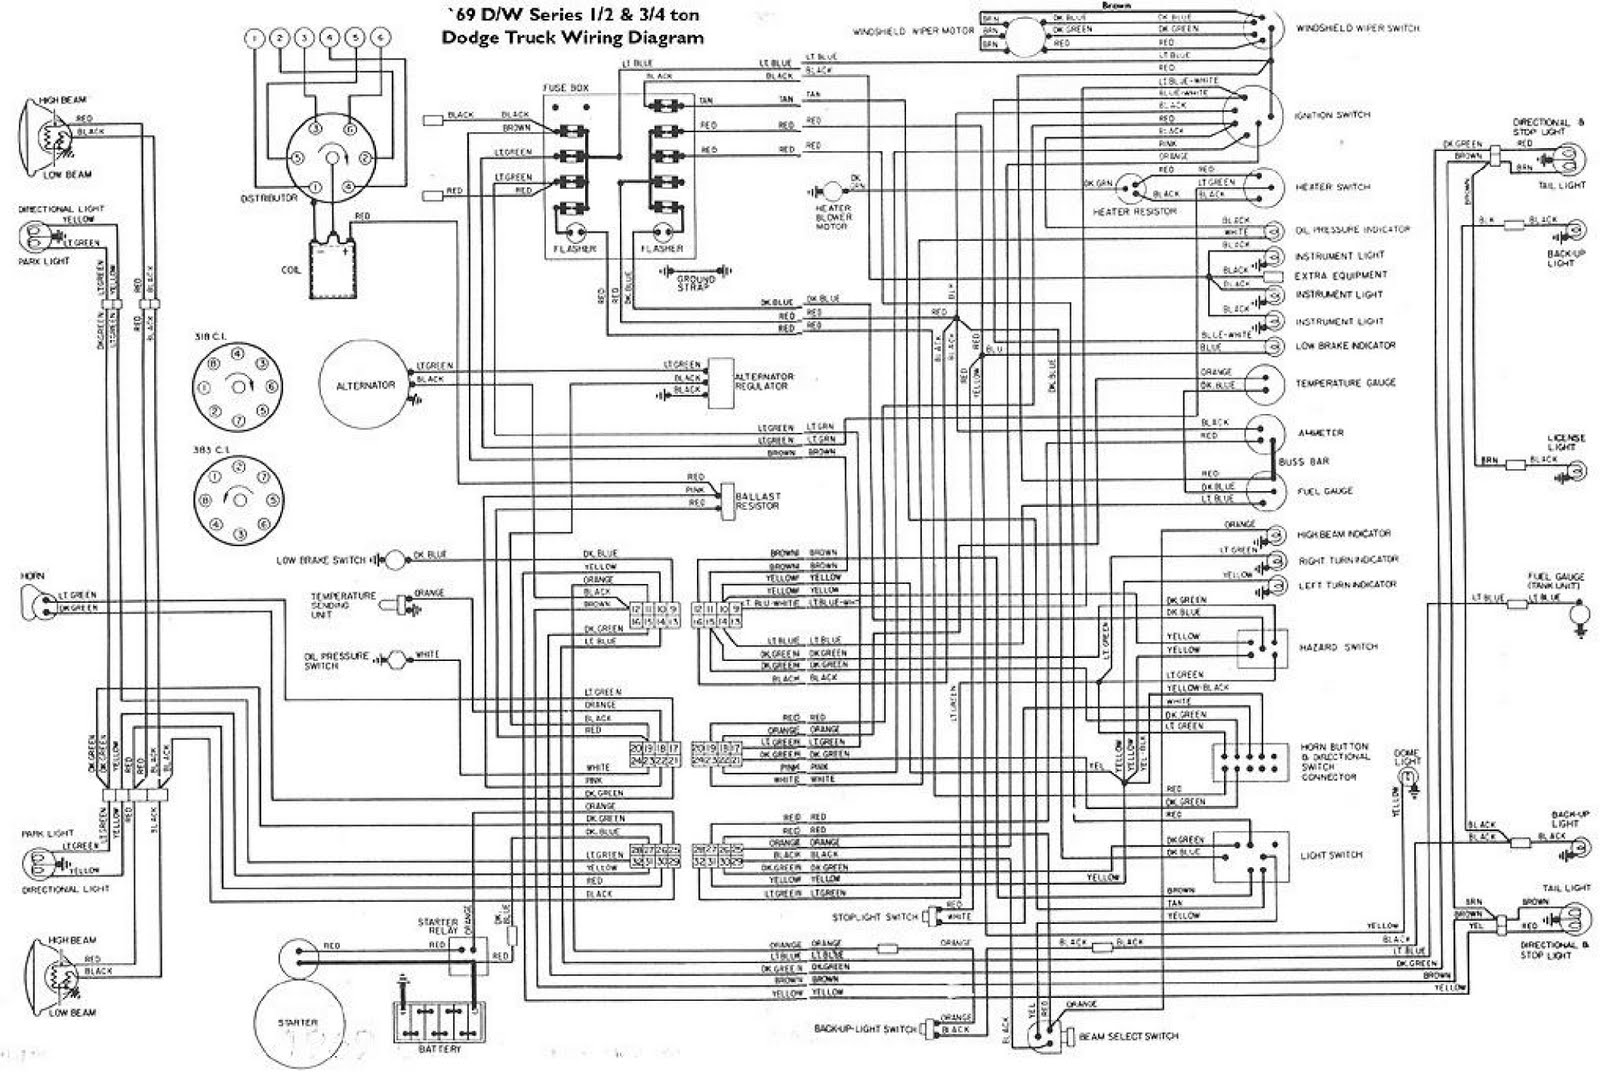 small resolution of 1976 dodge w200 wiring diagram wiring diagram imp 1974 dodge w200 wiring diagram 1976 dodge w200